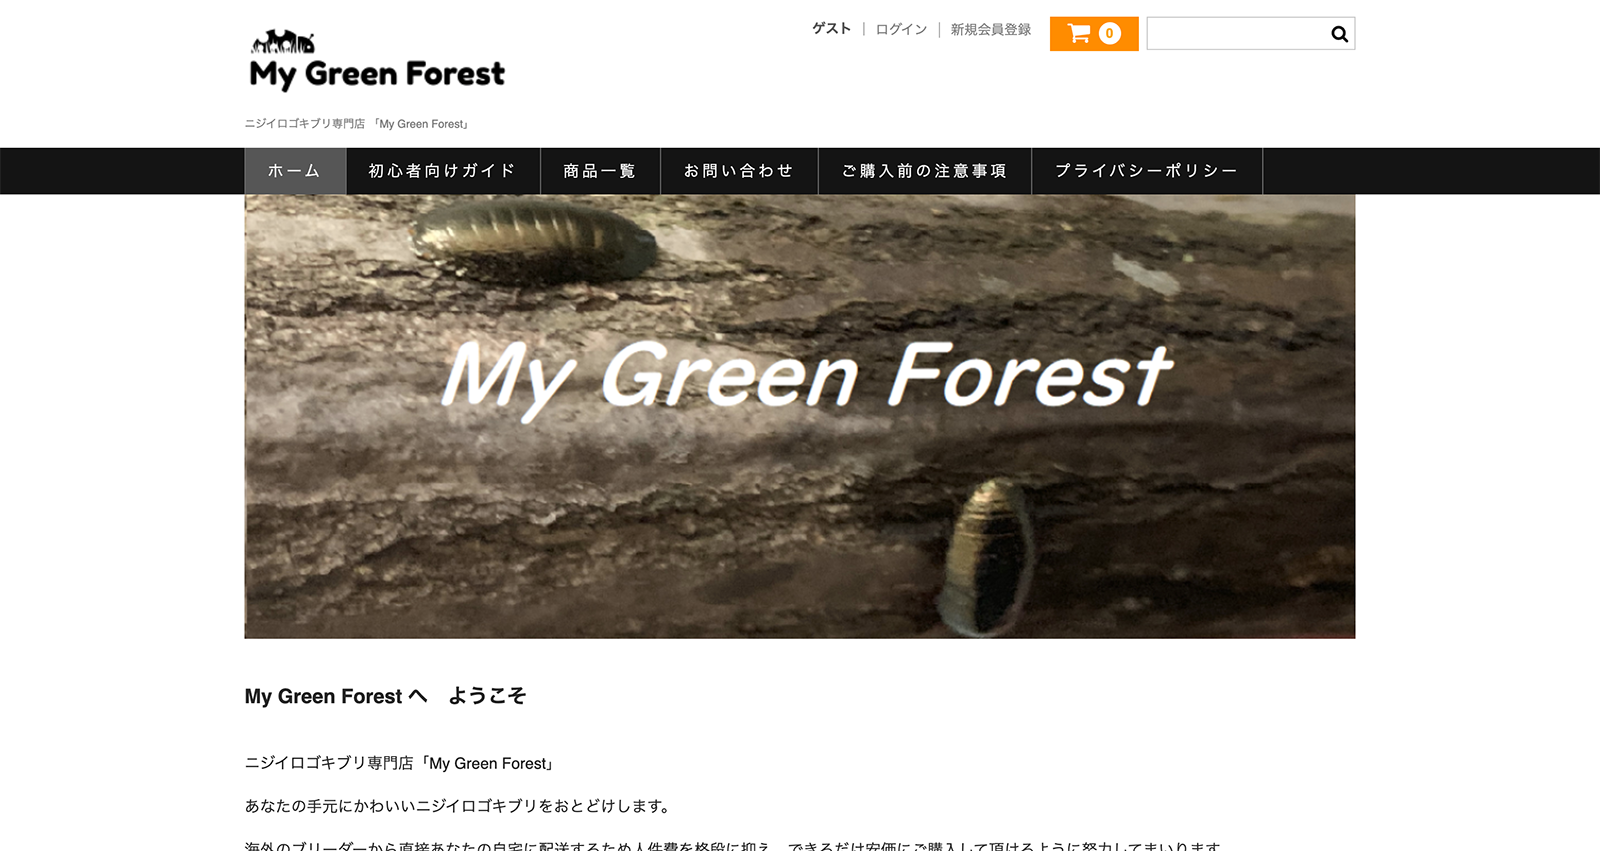 My Green Forestトップ画像